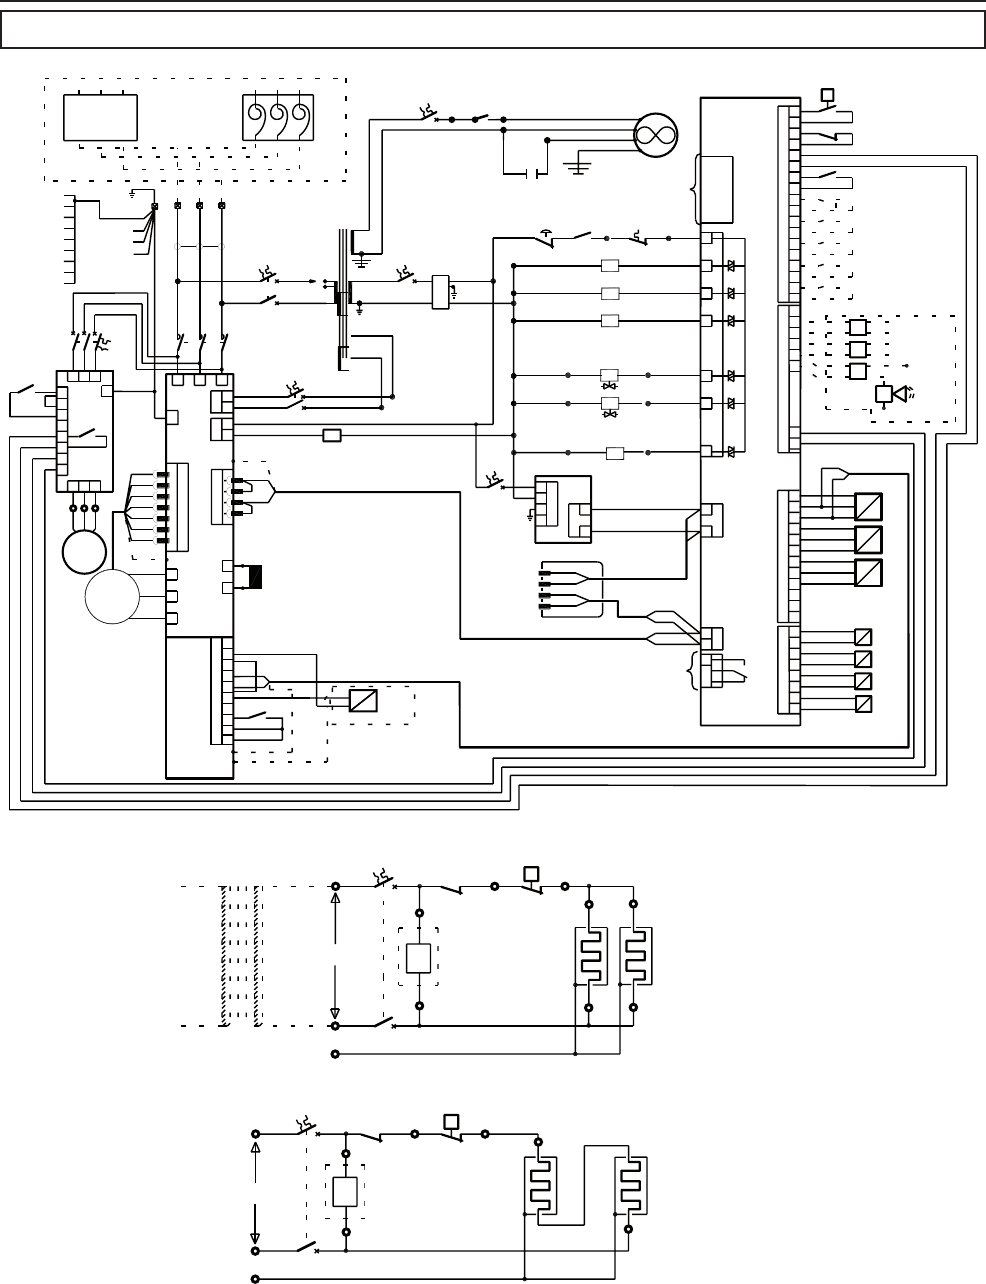 Ingersoll Rand Air Compressor Wiring Diagram - 12.10.smart-planit.de